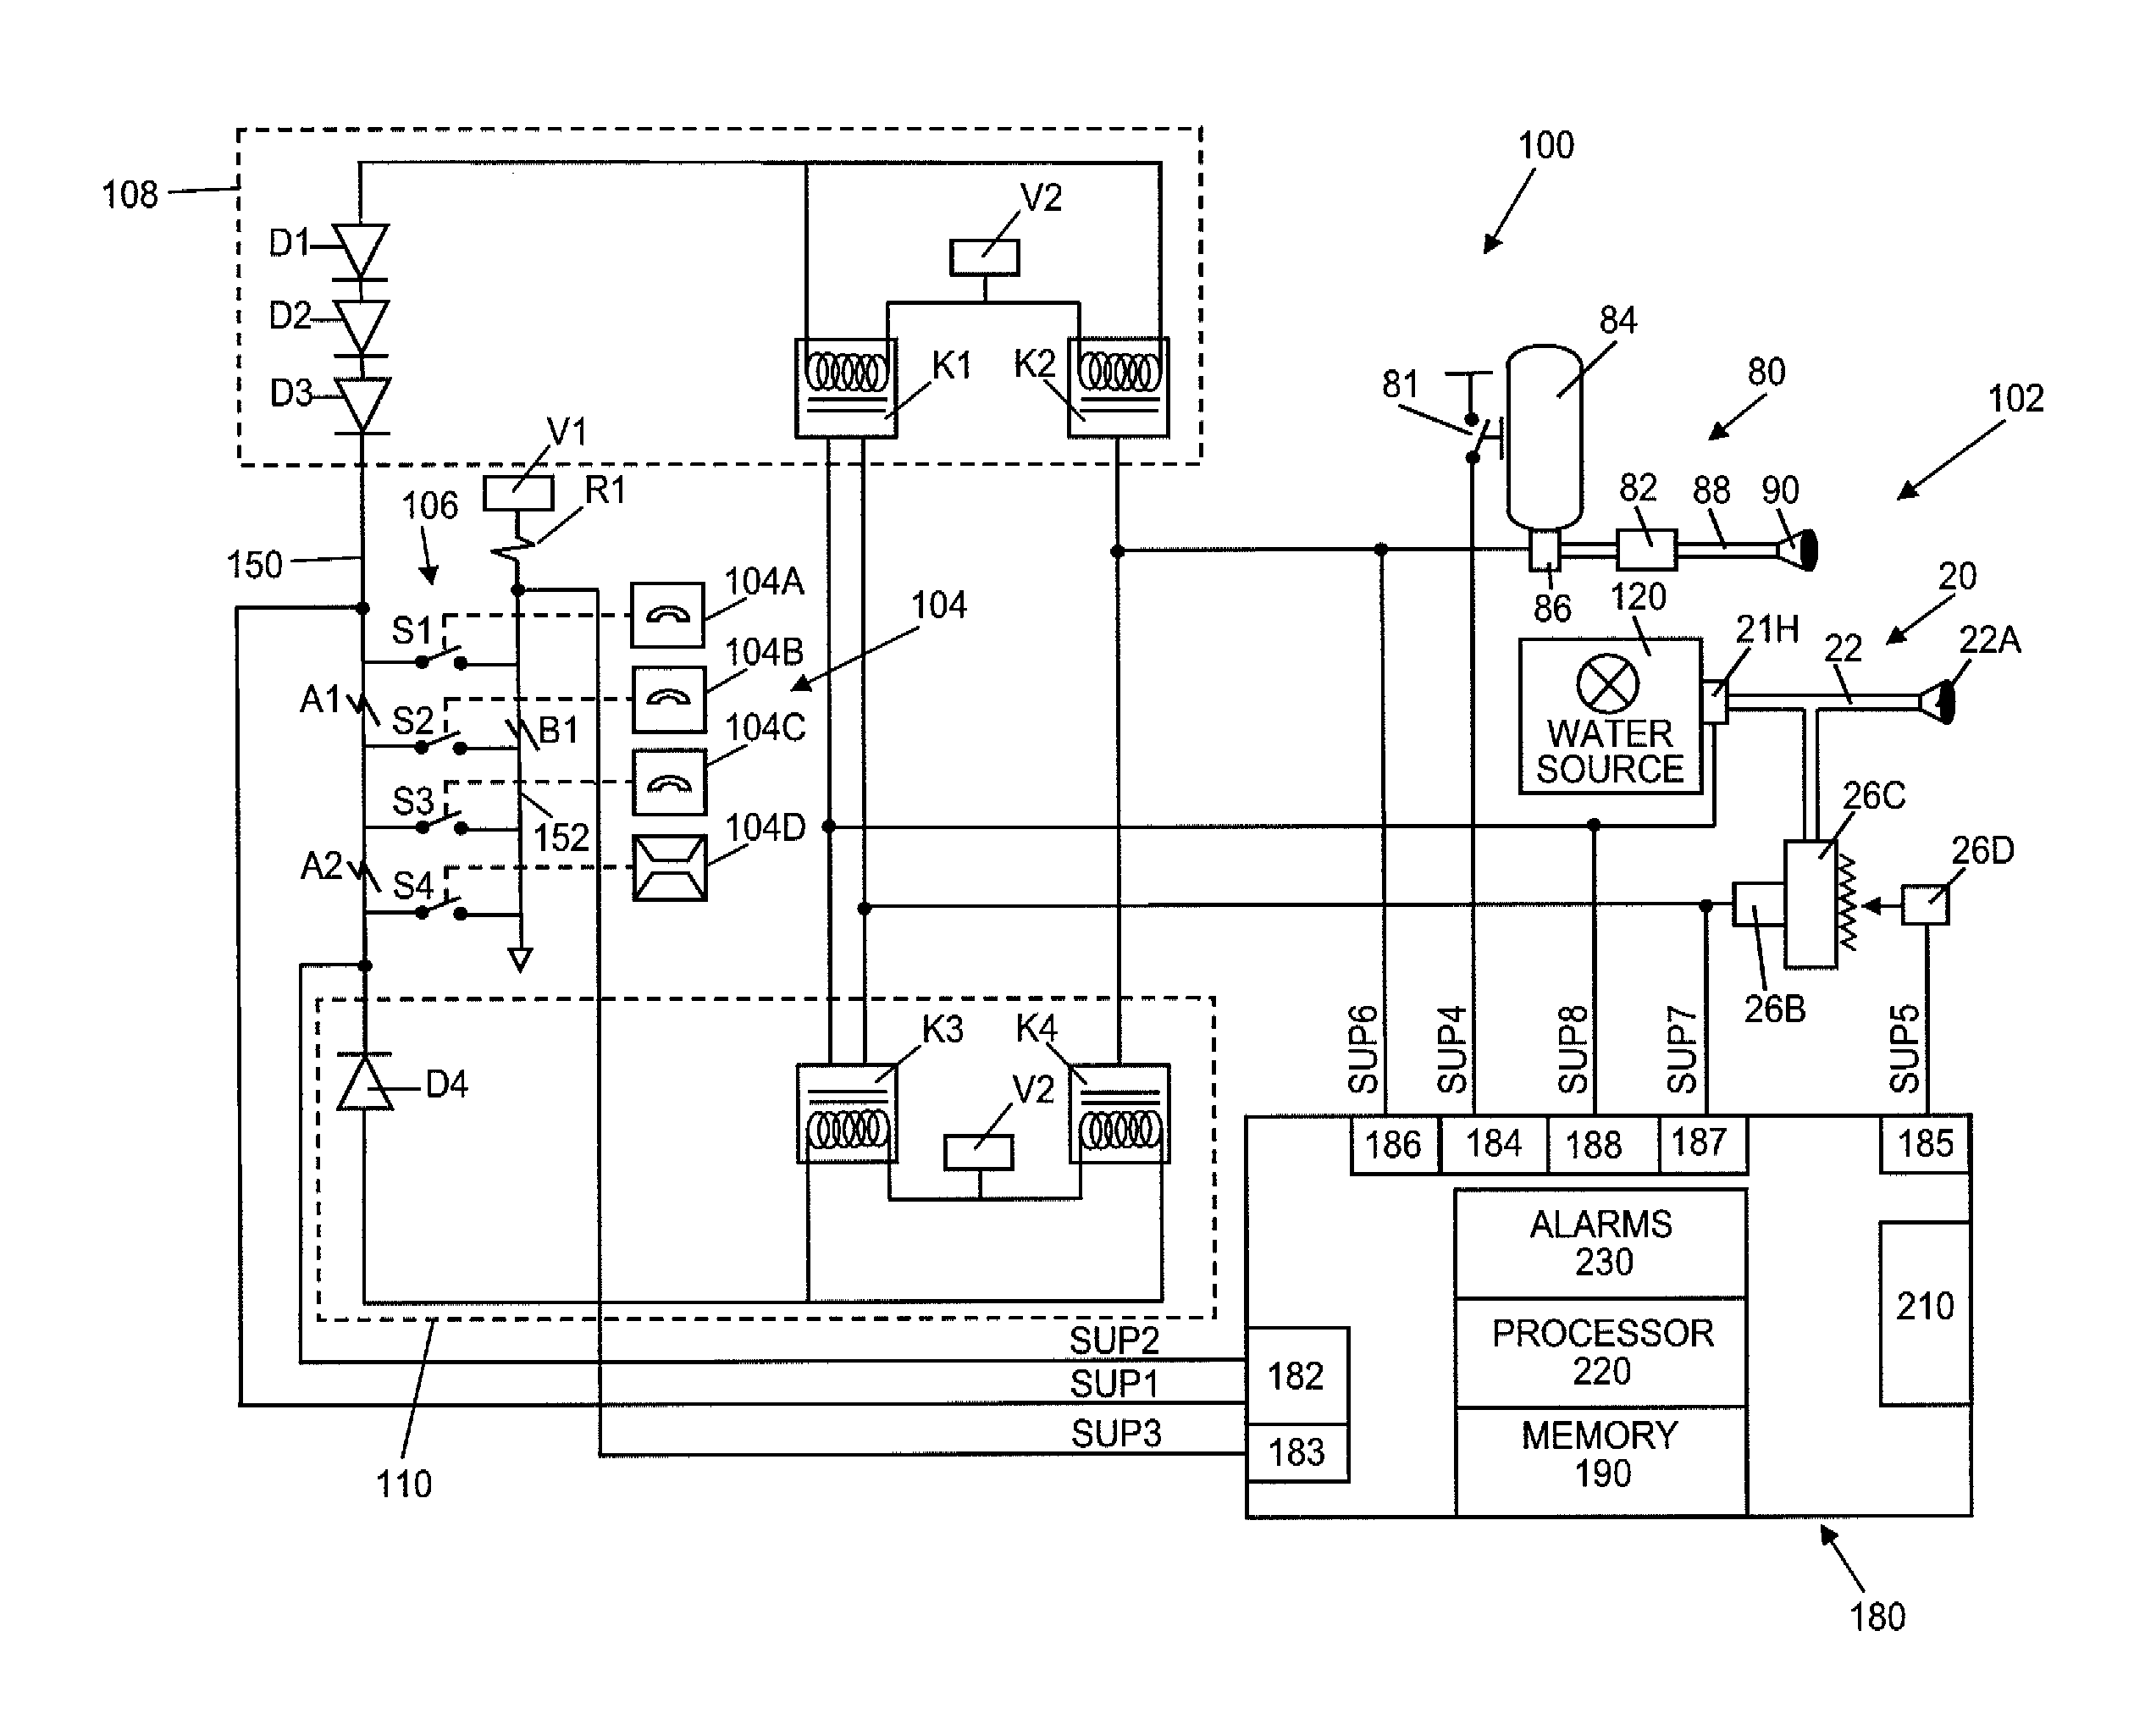 Fire Alarm System Wiring Diagram : Patent us kitchen hood assembly with fire